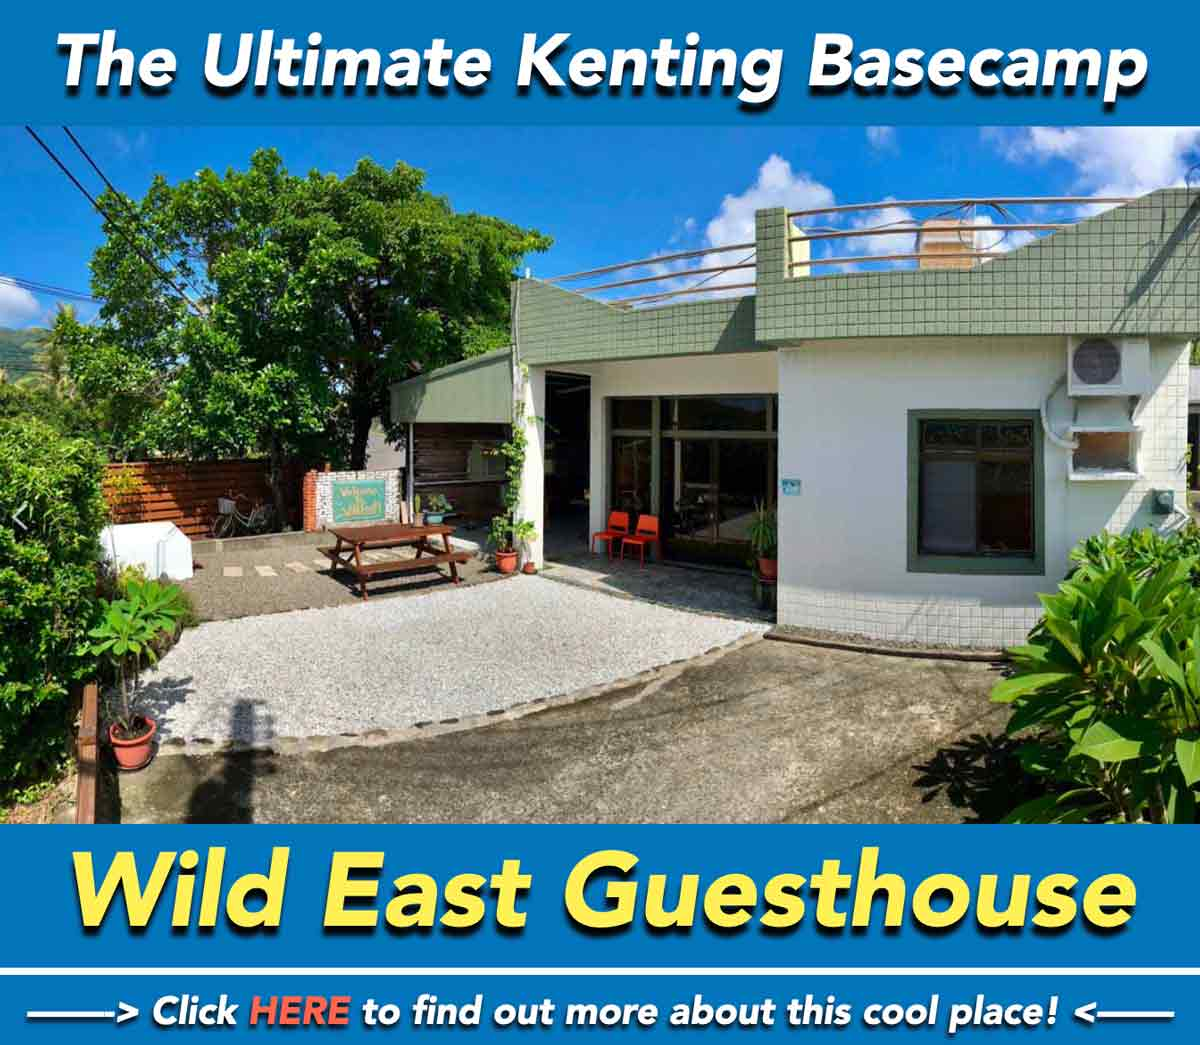 Wild East B&B Guesthouse Kenting